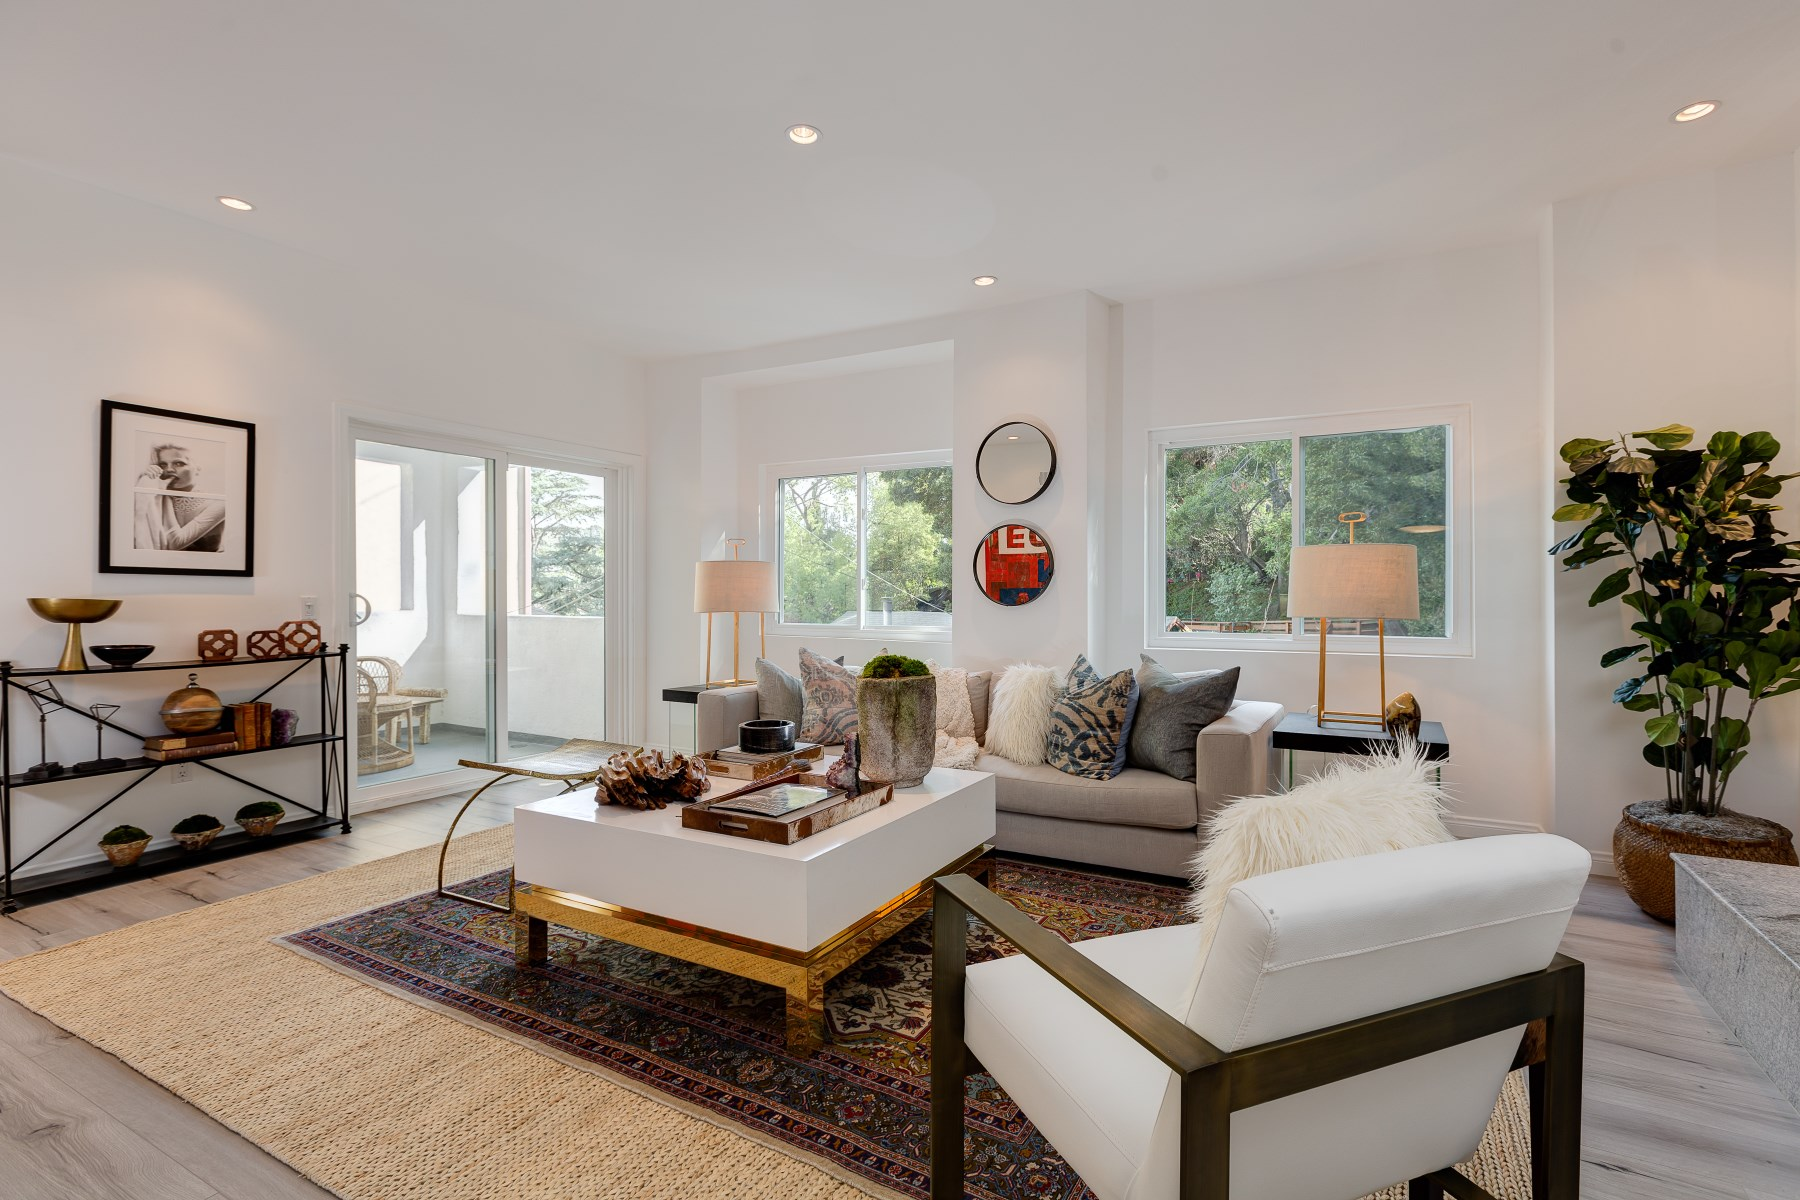 Single Family Home for Sale at 3866 Udell Court Los Feliz, Los Angeles, California, 90027 United States